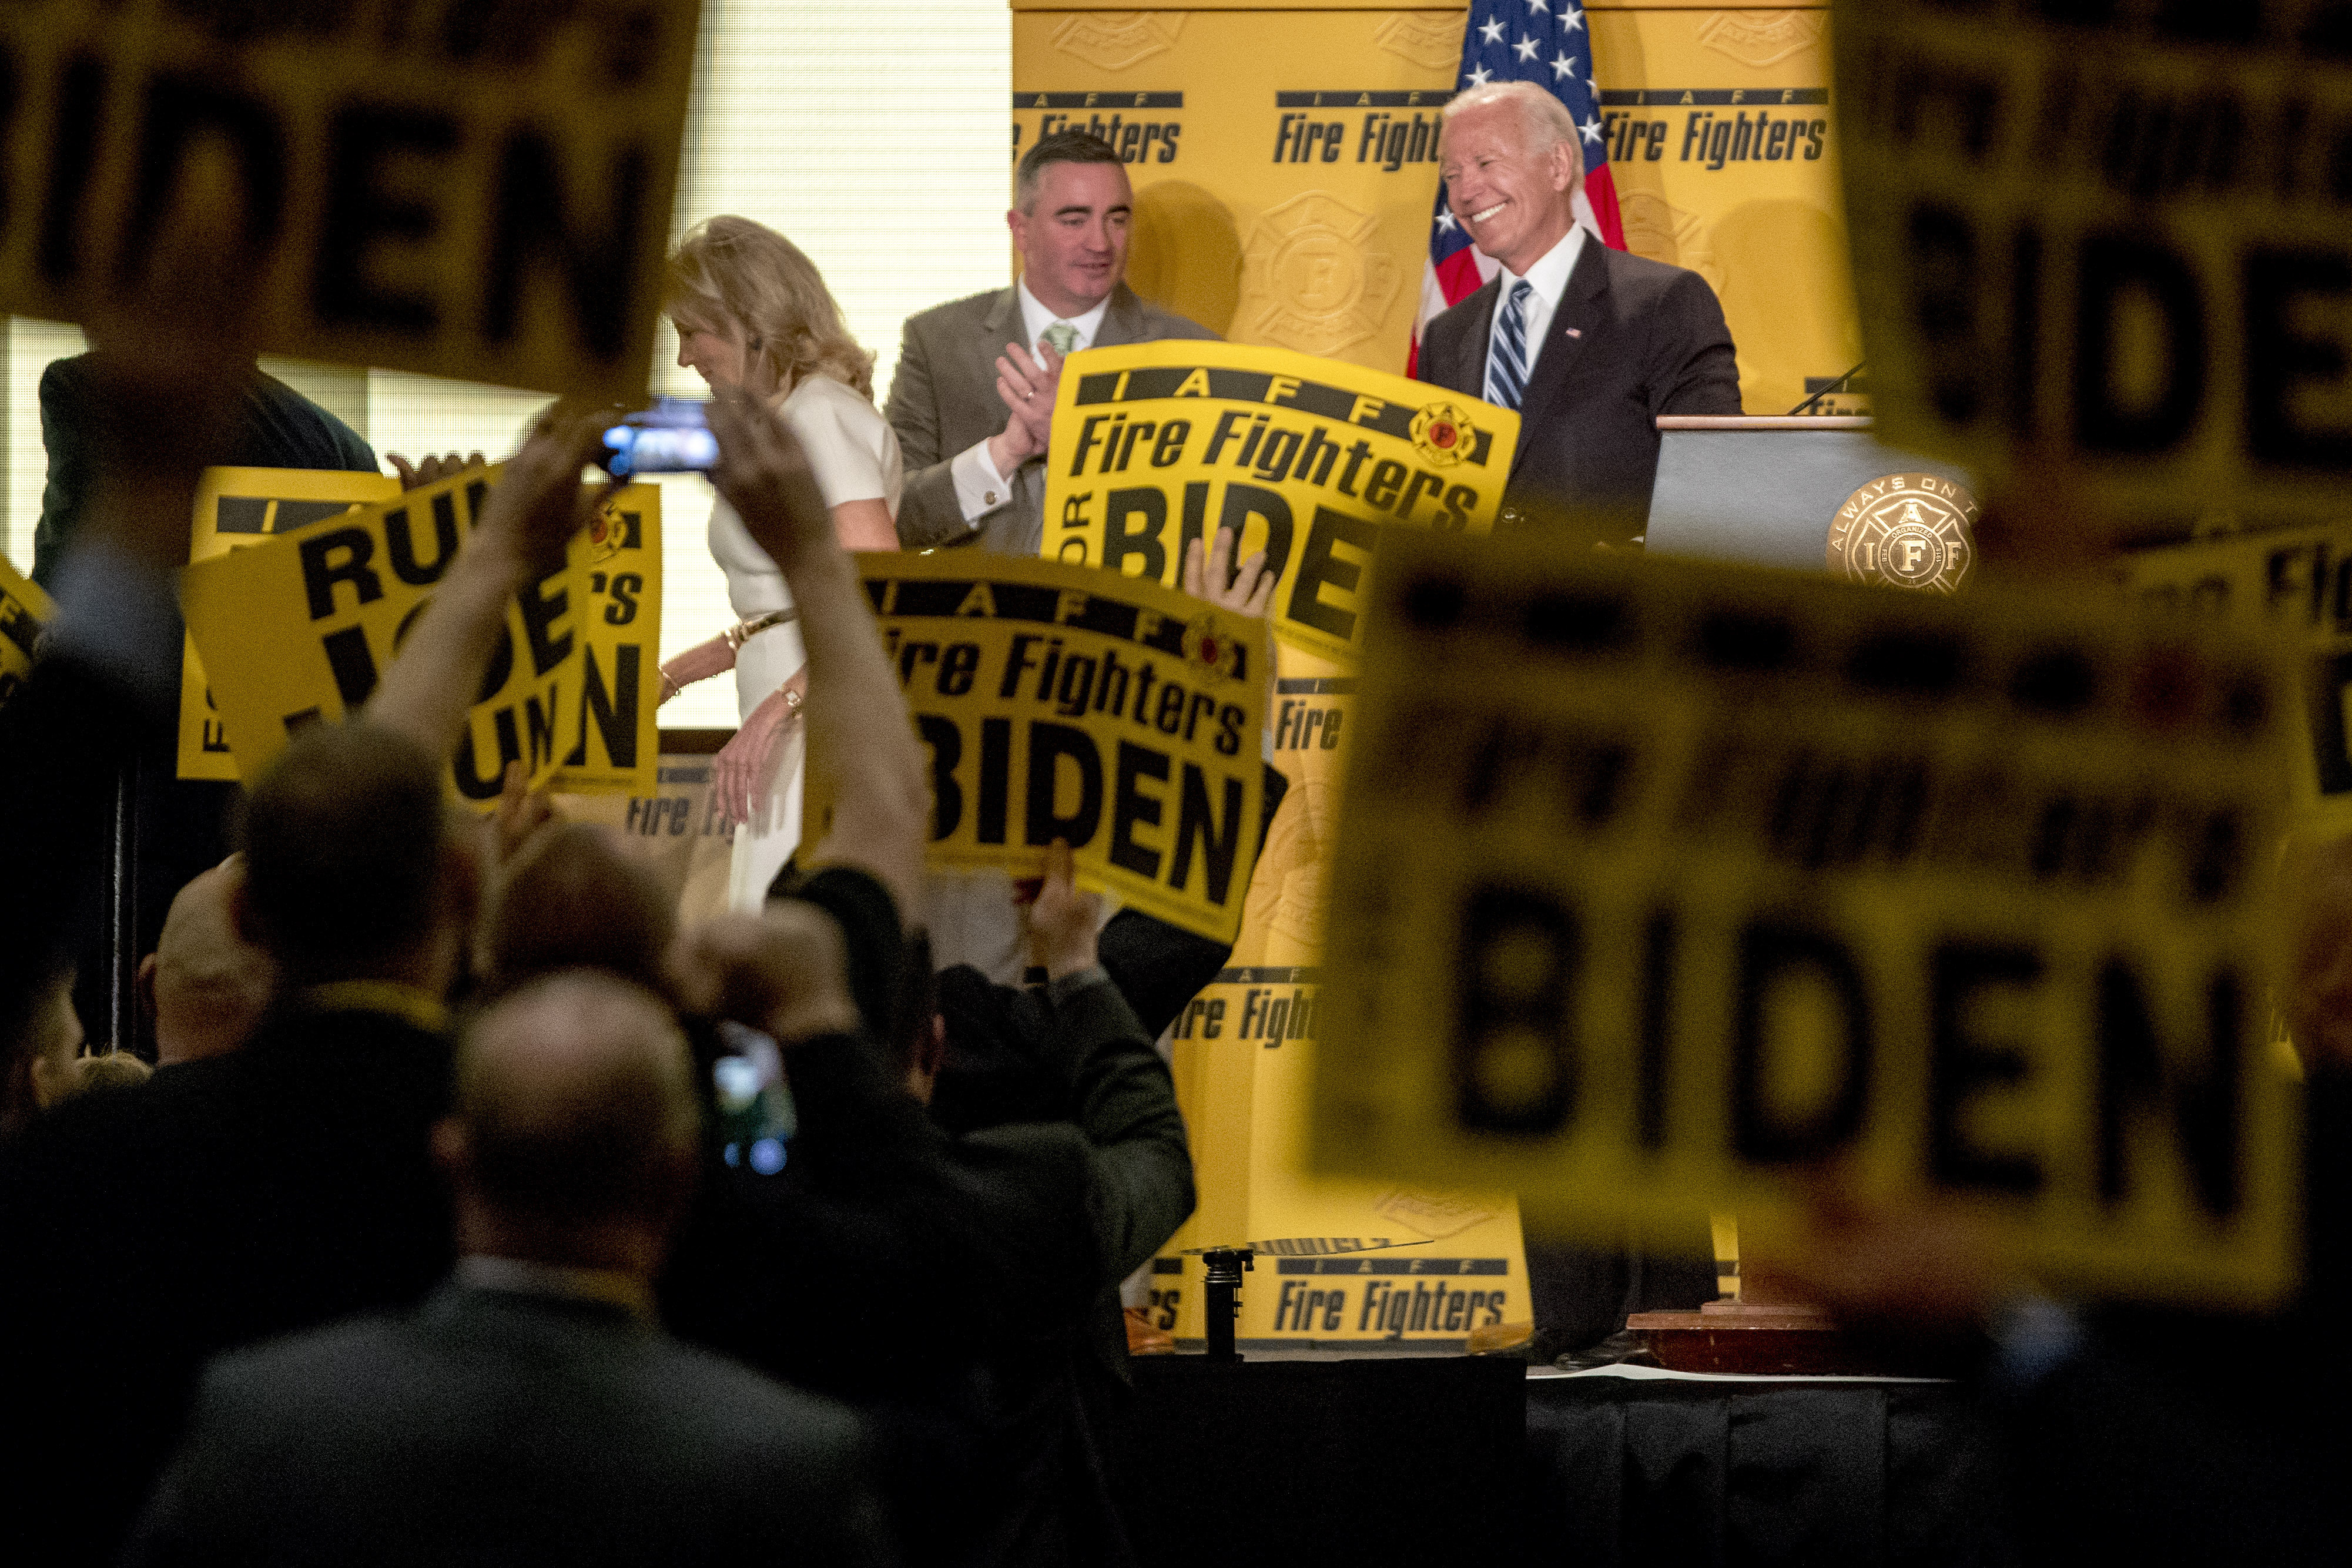 Former Vice President Joe Biden smiles as he exits the stage with his wife, former second lady Jill Biden, left, after speaking at the International Association of Firefighters at the Hyatt Regency on Capitol Hill in Washington, Tuesday, March 12, 2019, amid growing expectations he'll soon announce he's running for president. (AP Photo/Andrew Harnik)